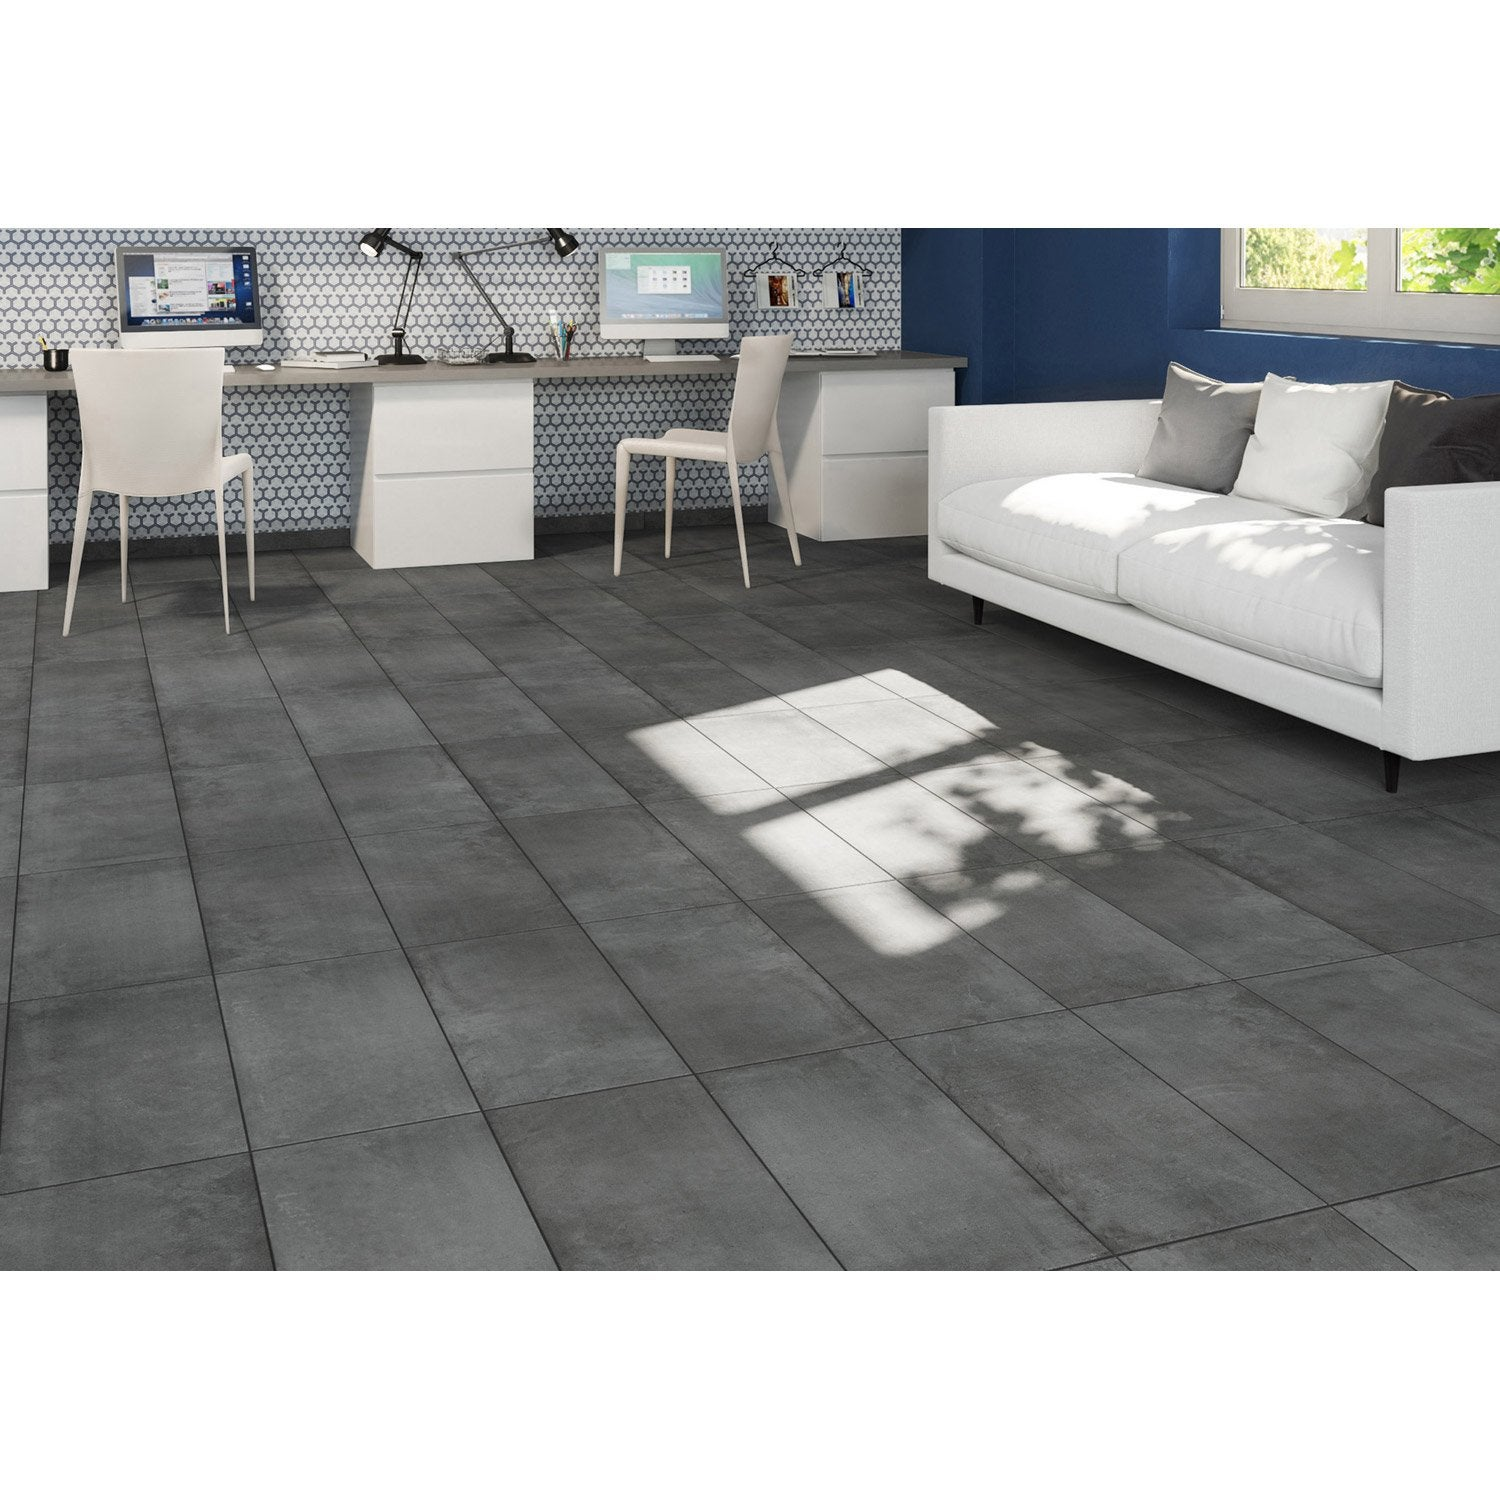 Parquet imitation carrelage leroy merlin trendy beautiful for Beton cire sol salle de bain leroy merlin